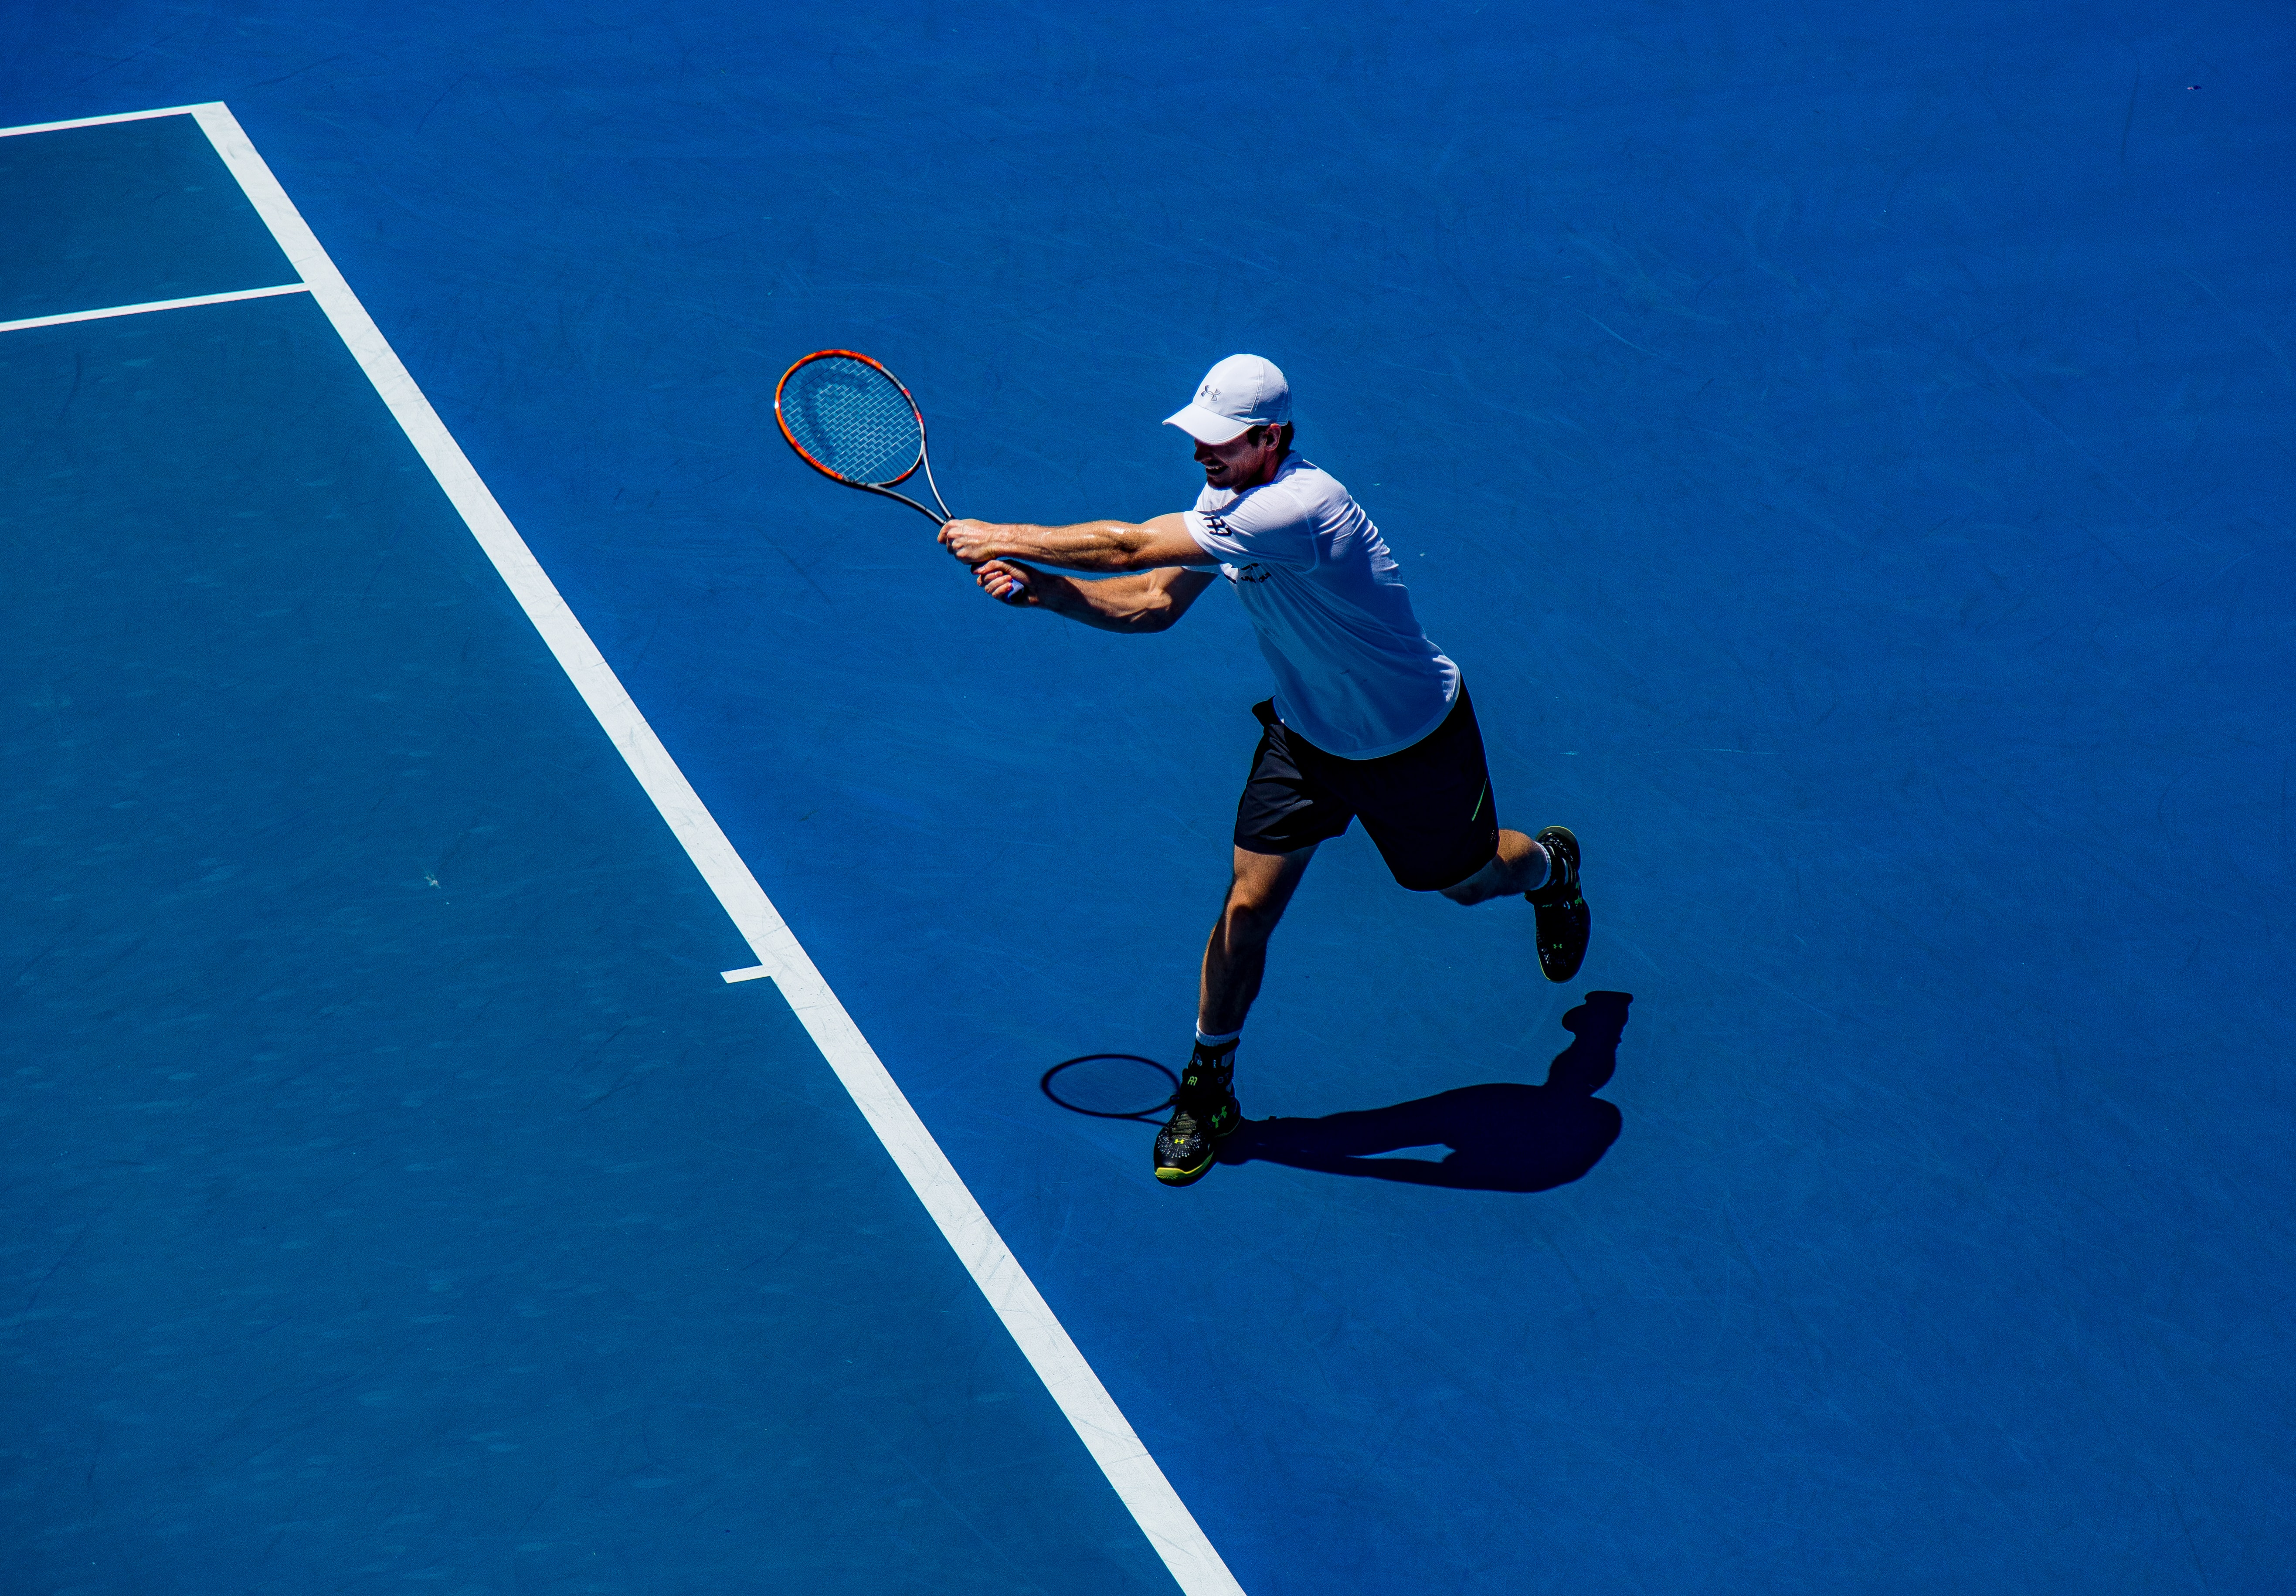 man playing tennis on field